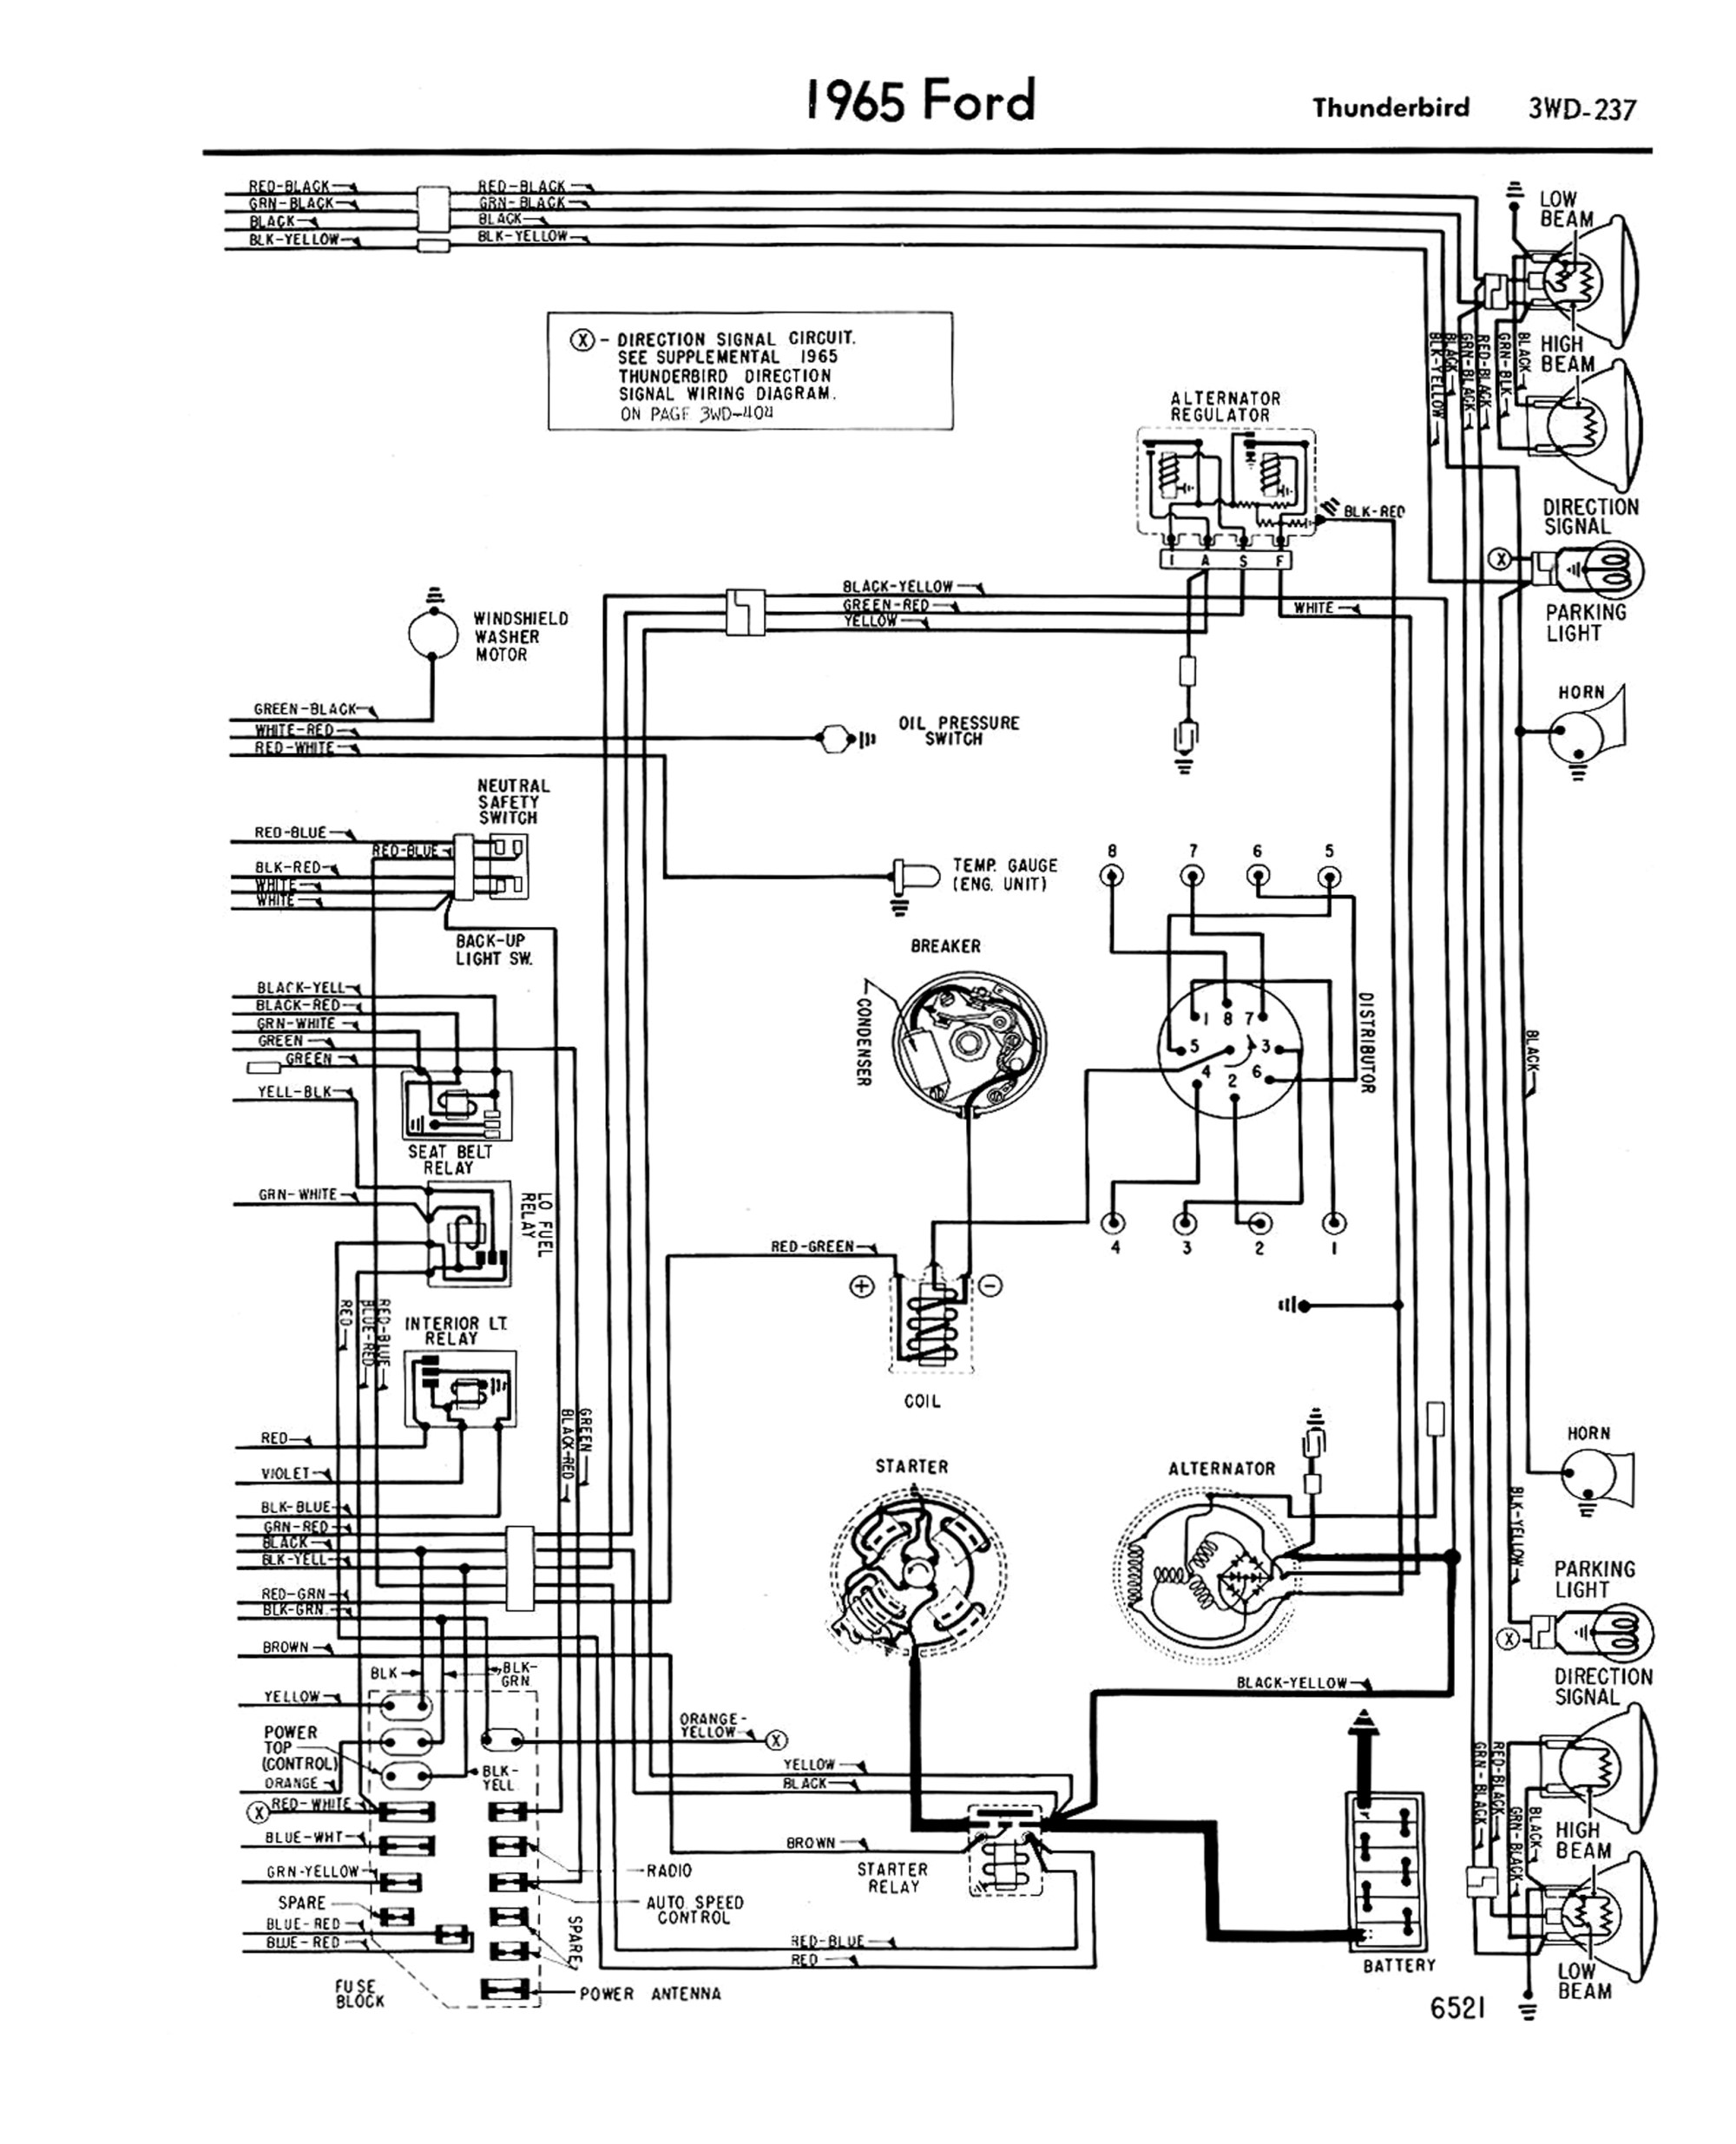 hight resolution of 1955 ford turn signal wiring diagram wiring diagrams img cj5 turn signal wiring diagram 1956 ford turn signal wiring diagram